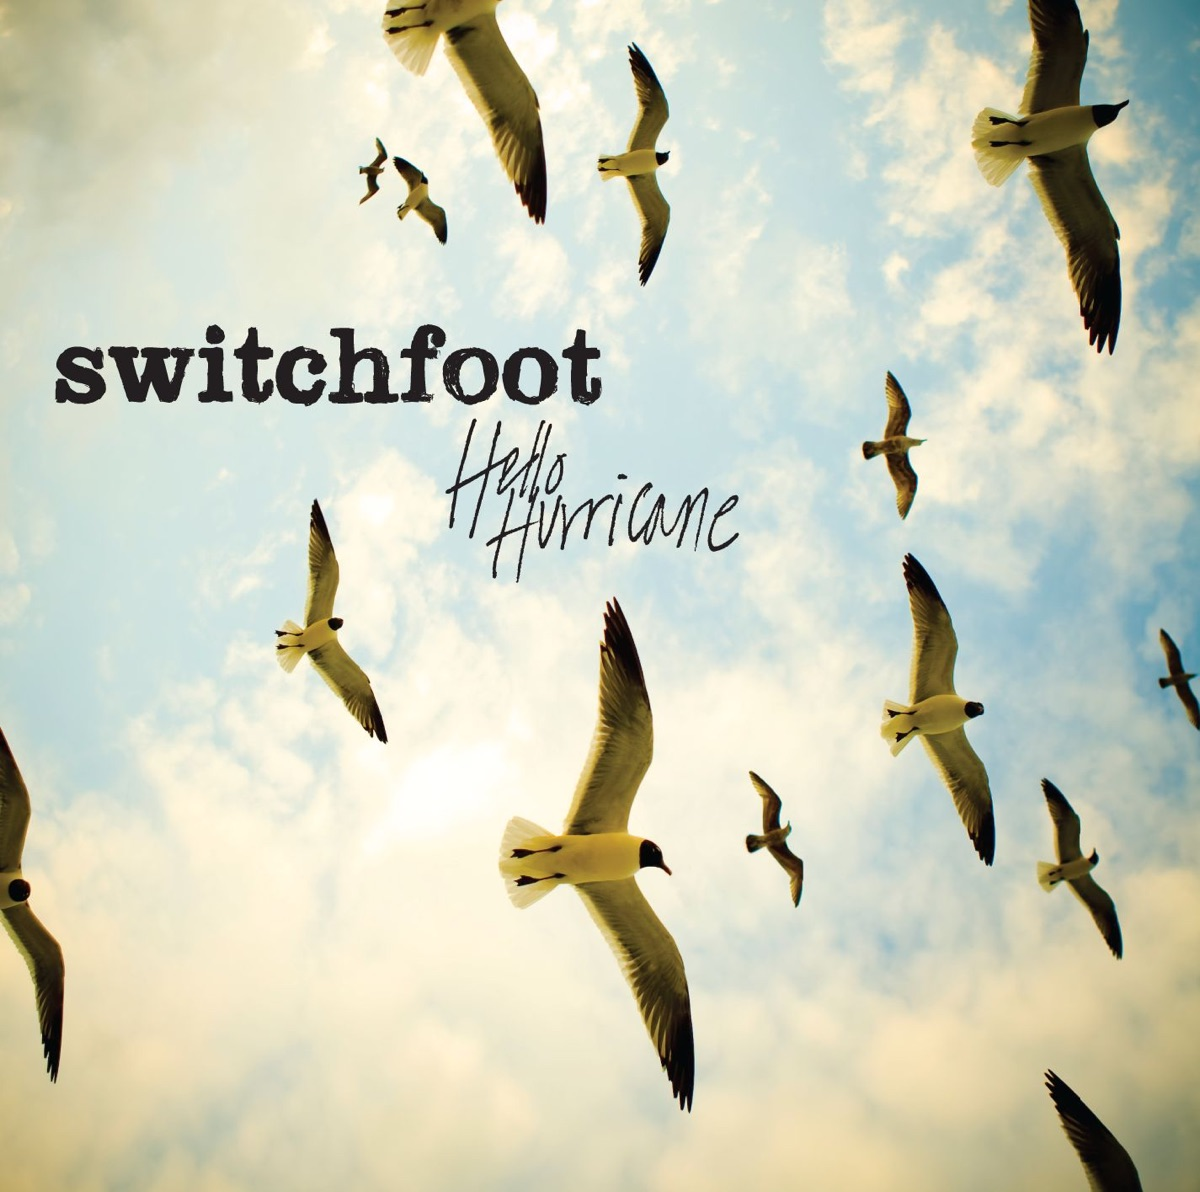 Hello Hurricane Album Cover by Switchfoot